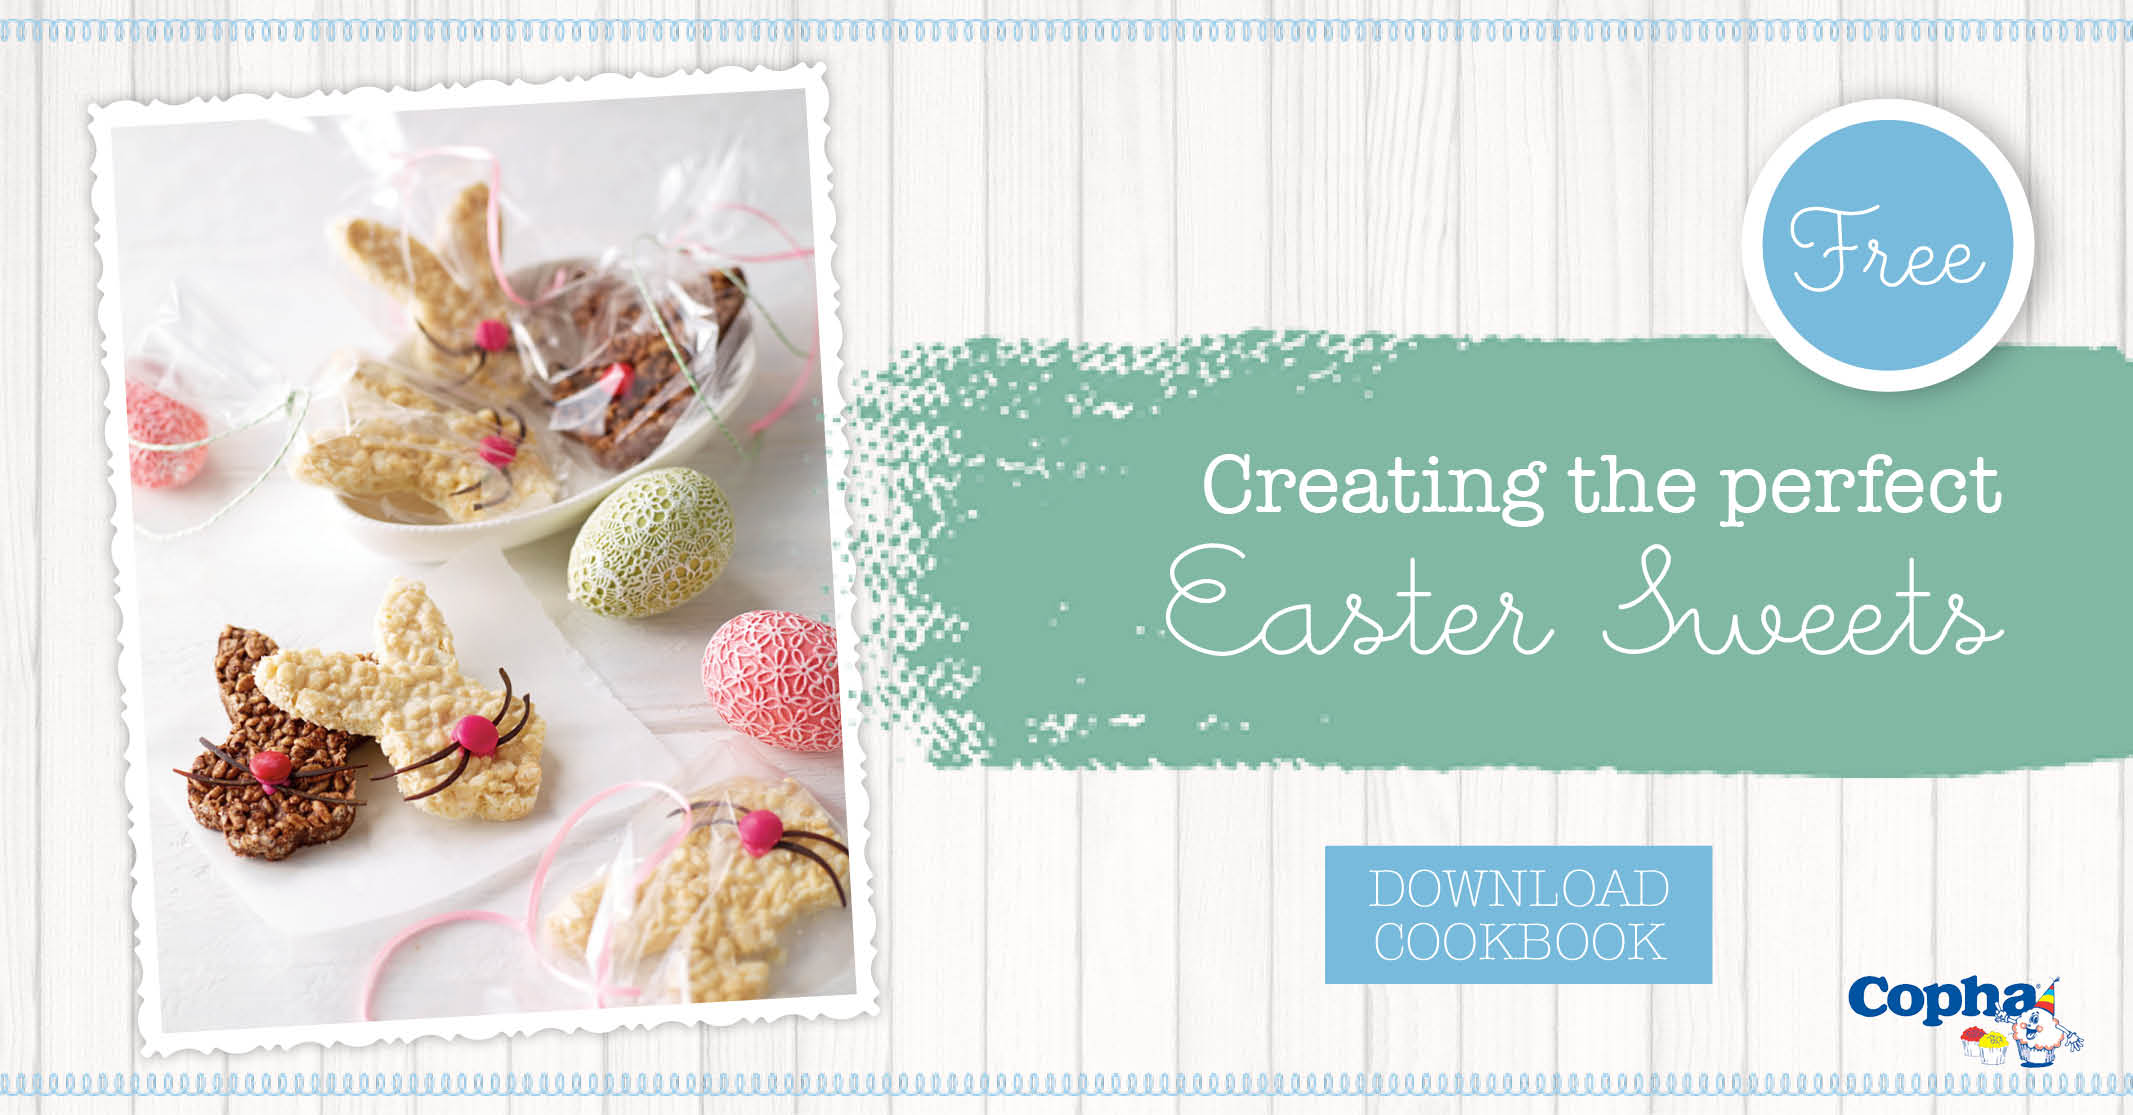 Easter sweets cookbook - great for kids baking and decorating